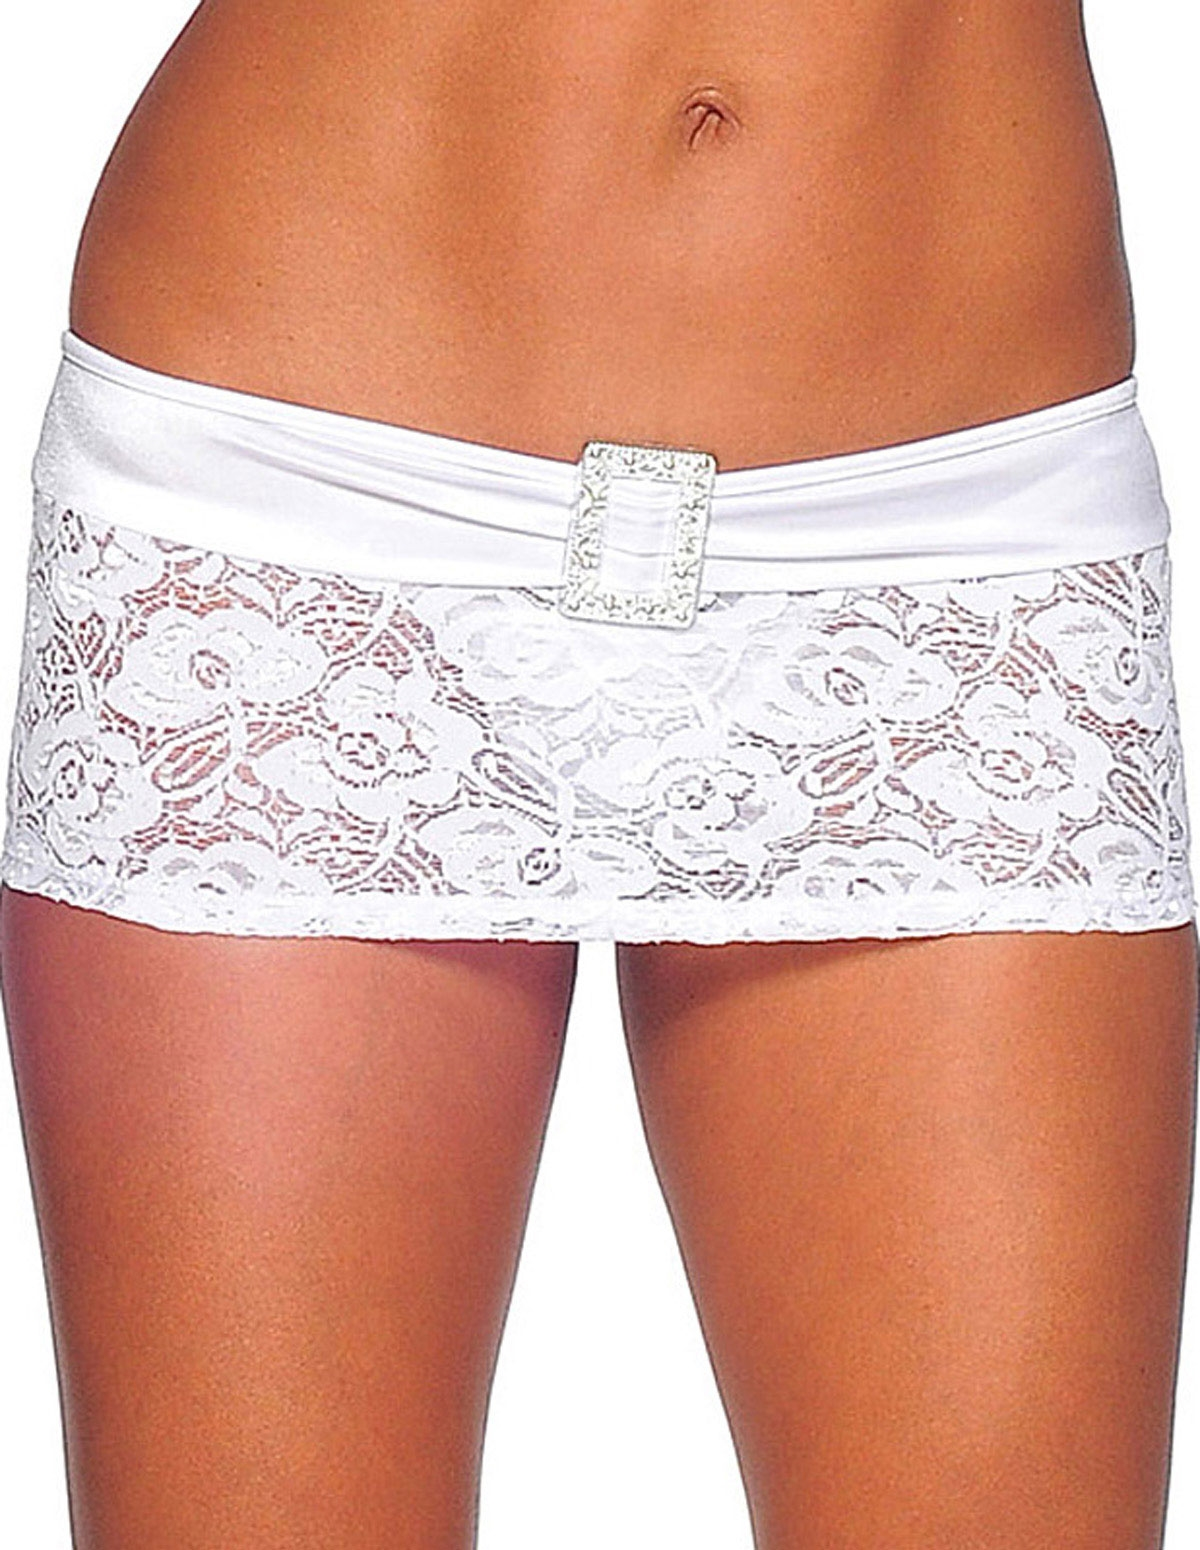 Lace Cowgirl Skirt